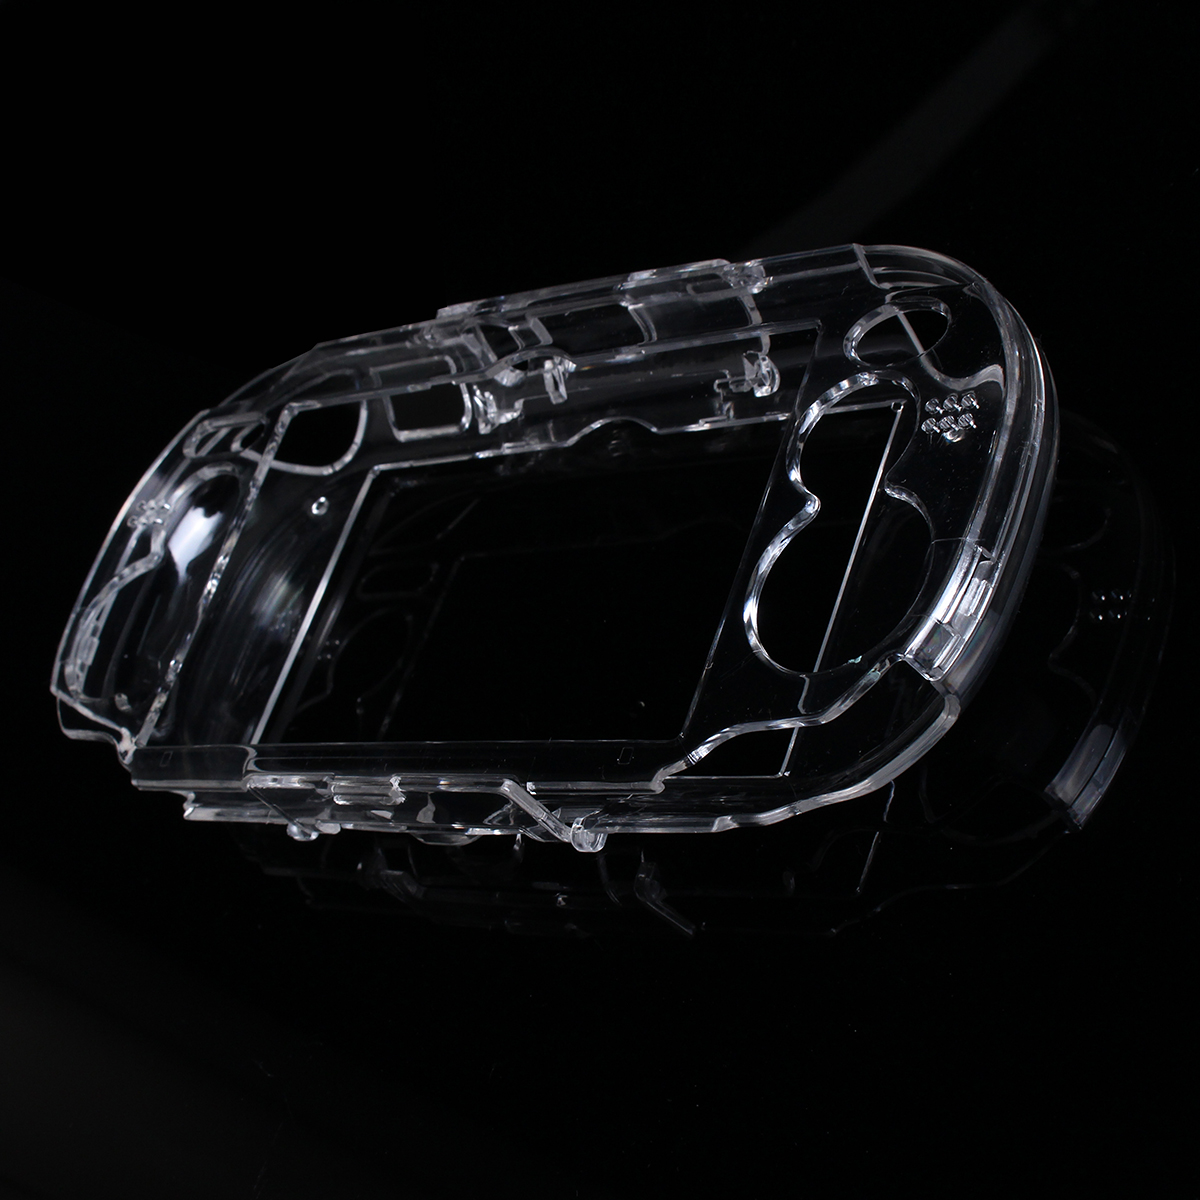 Clear Crystal Hard Skin Case Cover Shell Protector For Sony PS Vita PSP PSV 1000 Video Game Console